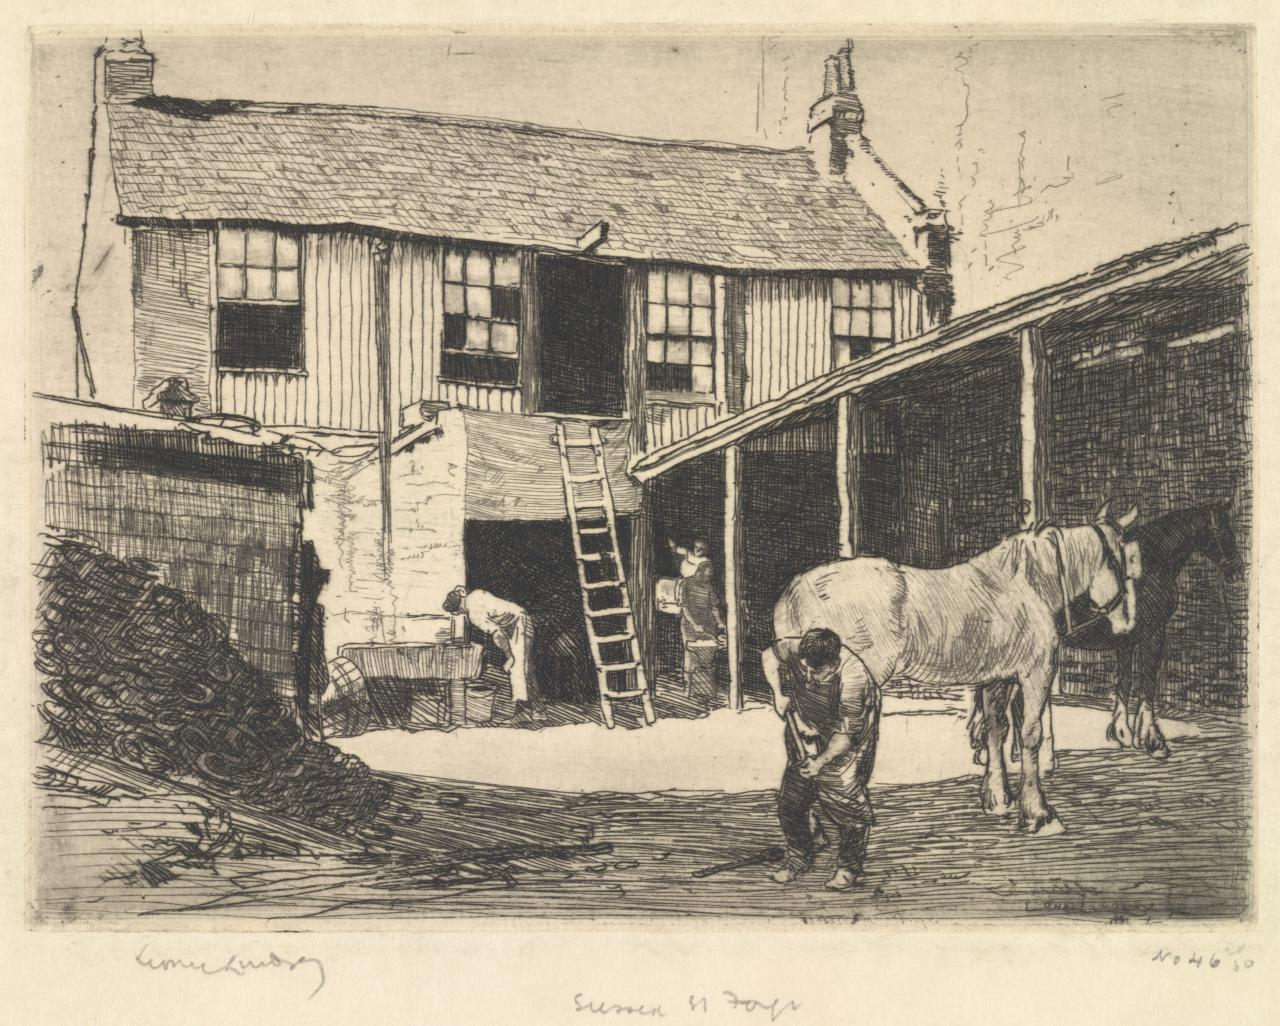 Sussex Street Forge